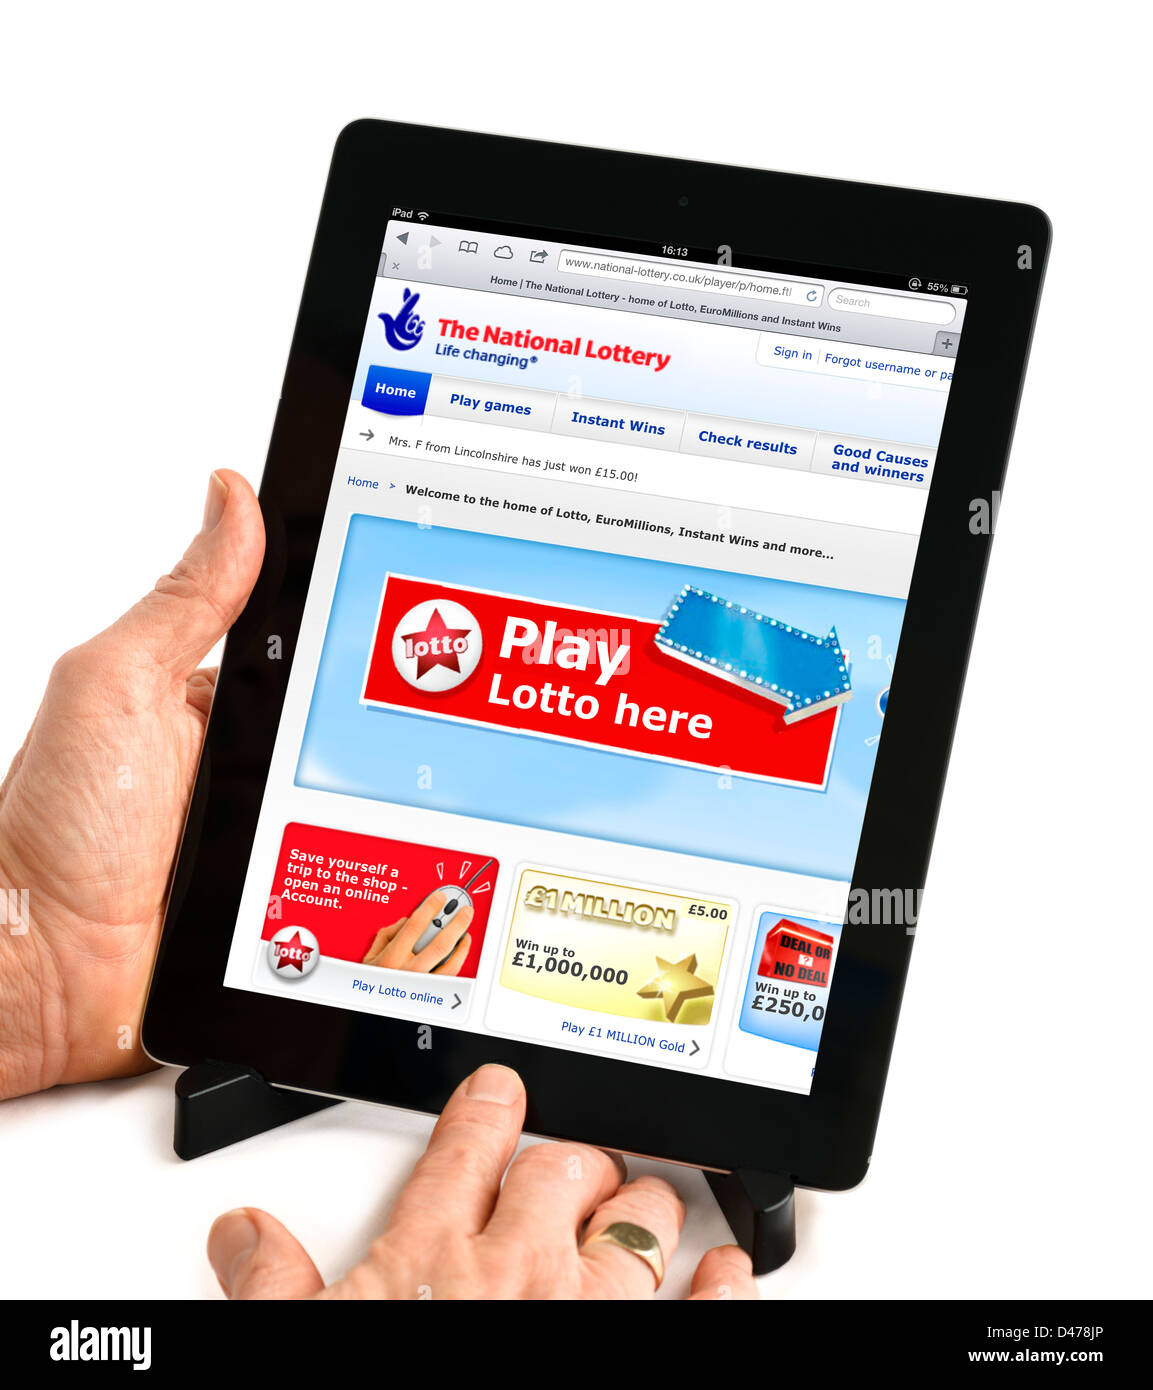 The UK National Lottery website viewed on an iPad 4, UK - Stock Image